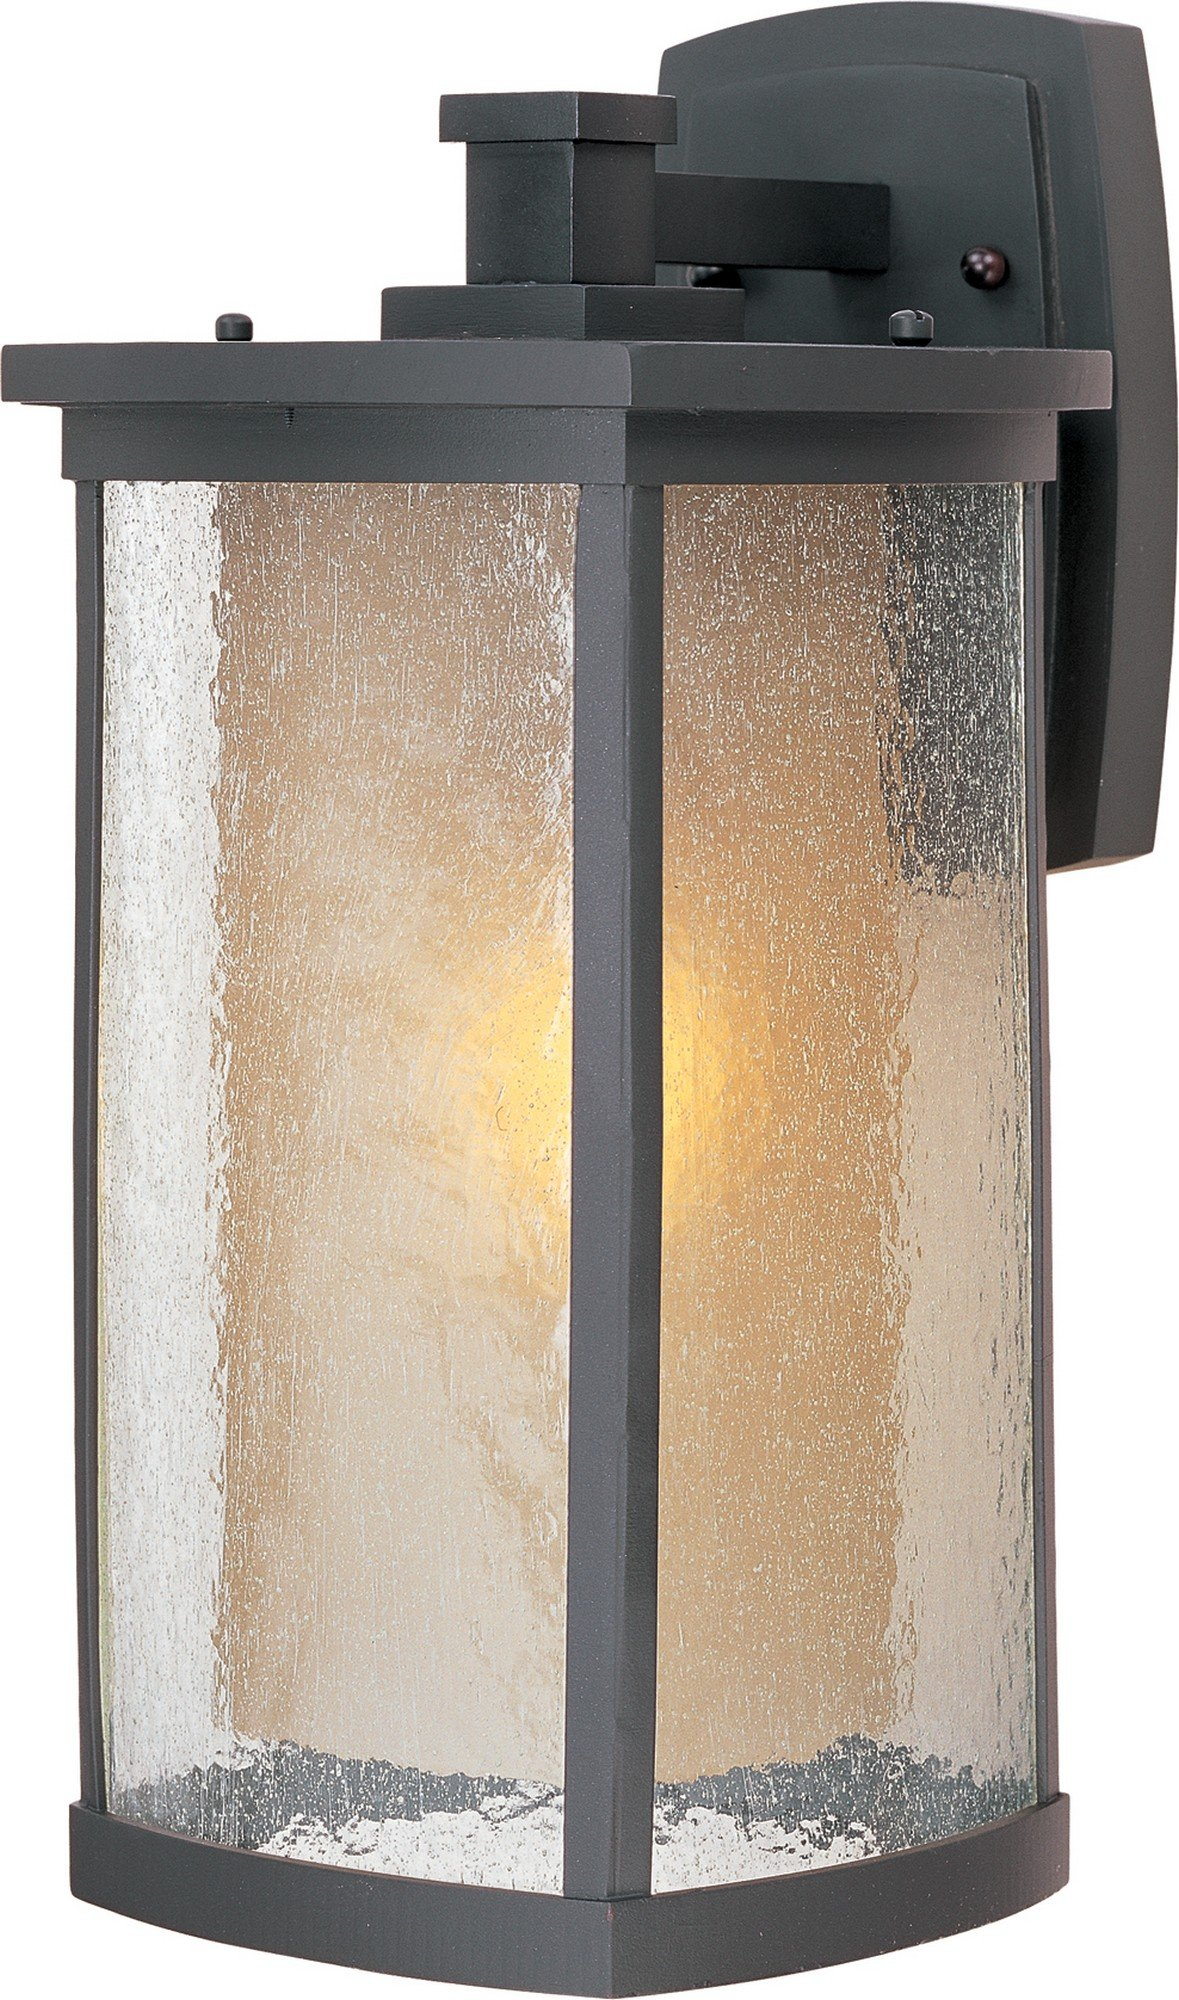 Maxim 3154CDWSBZ Bungalow 1-Light Wall Lantern, Bronze Finish, Seedy/Wilshire Glass, MB Incandescent Incandescent Bulb , 60W Max., Dry Safety Rating, Standard Dimmable, Glass Shade Material, Rated Lumens